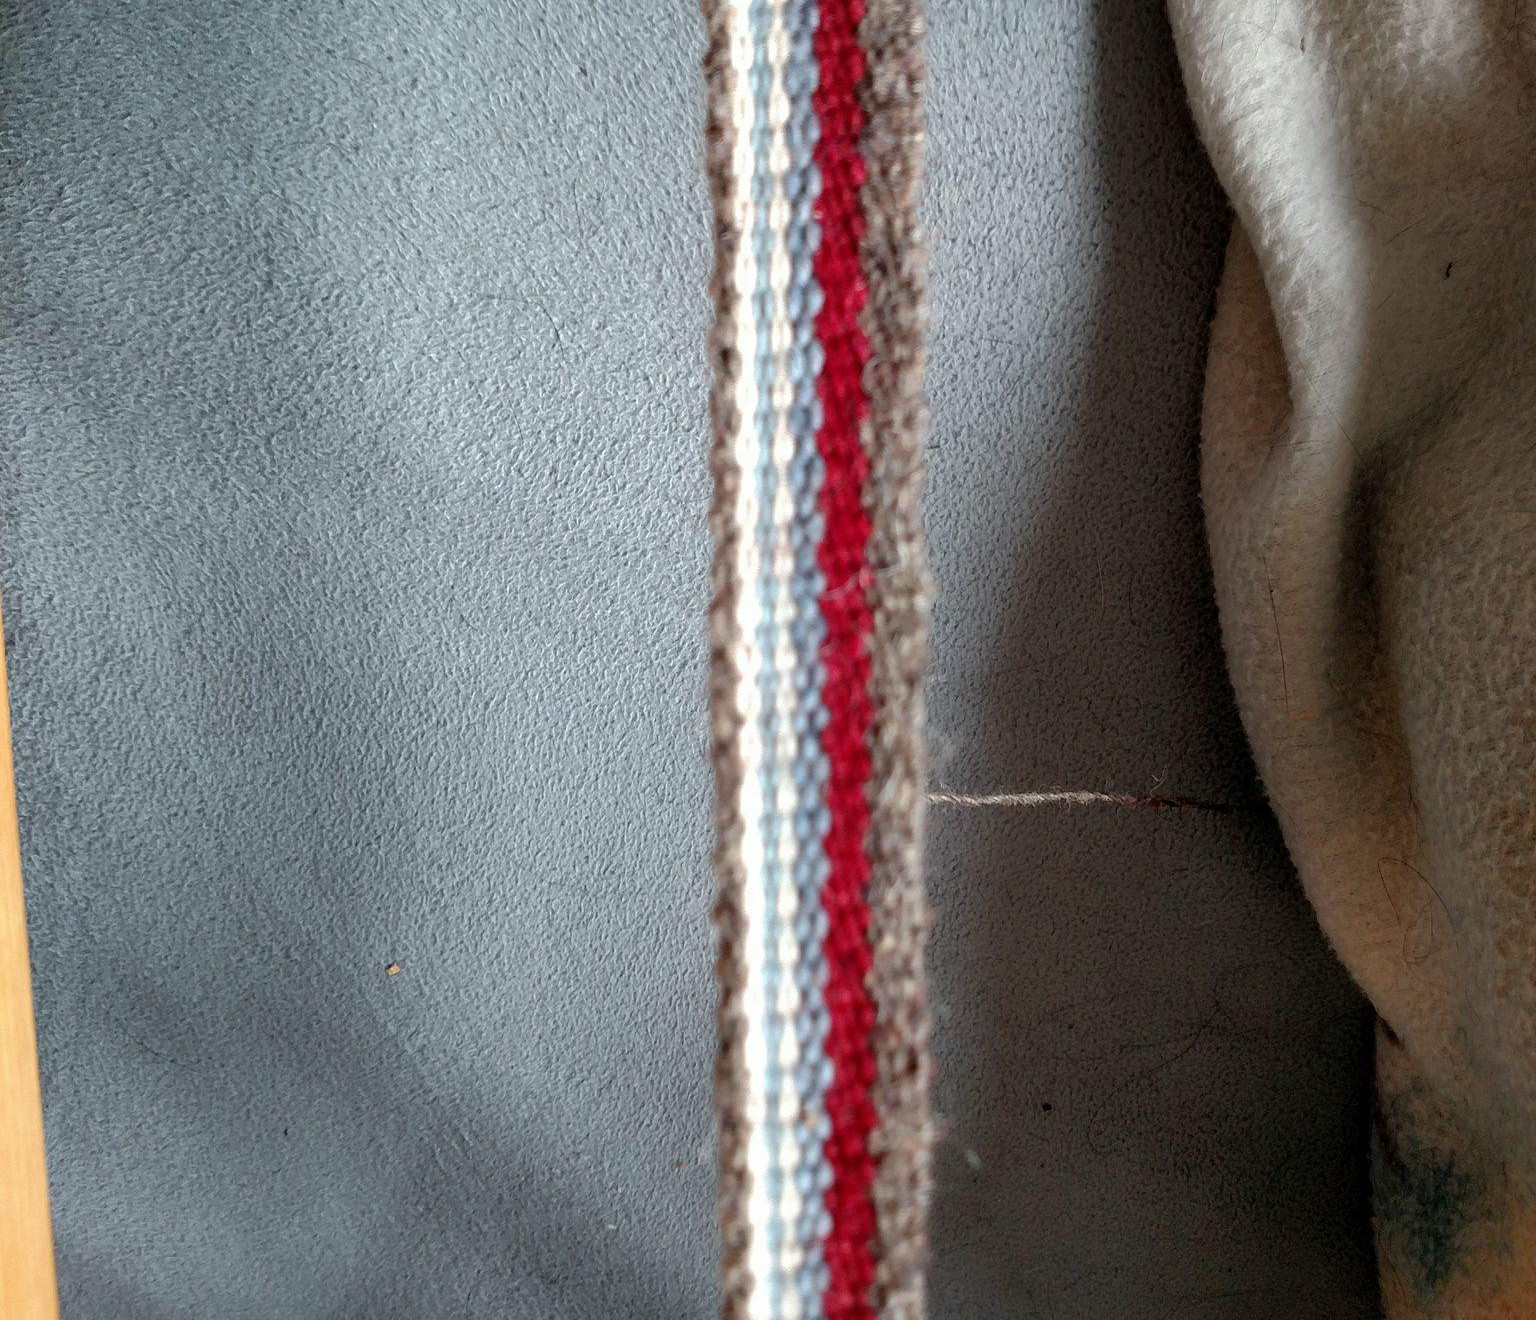 Inkle-loom woven tape for sleeve and breeches cuffs